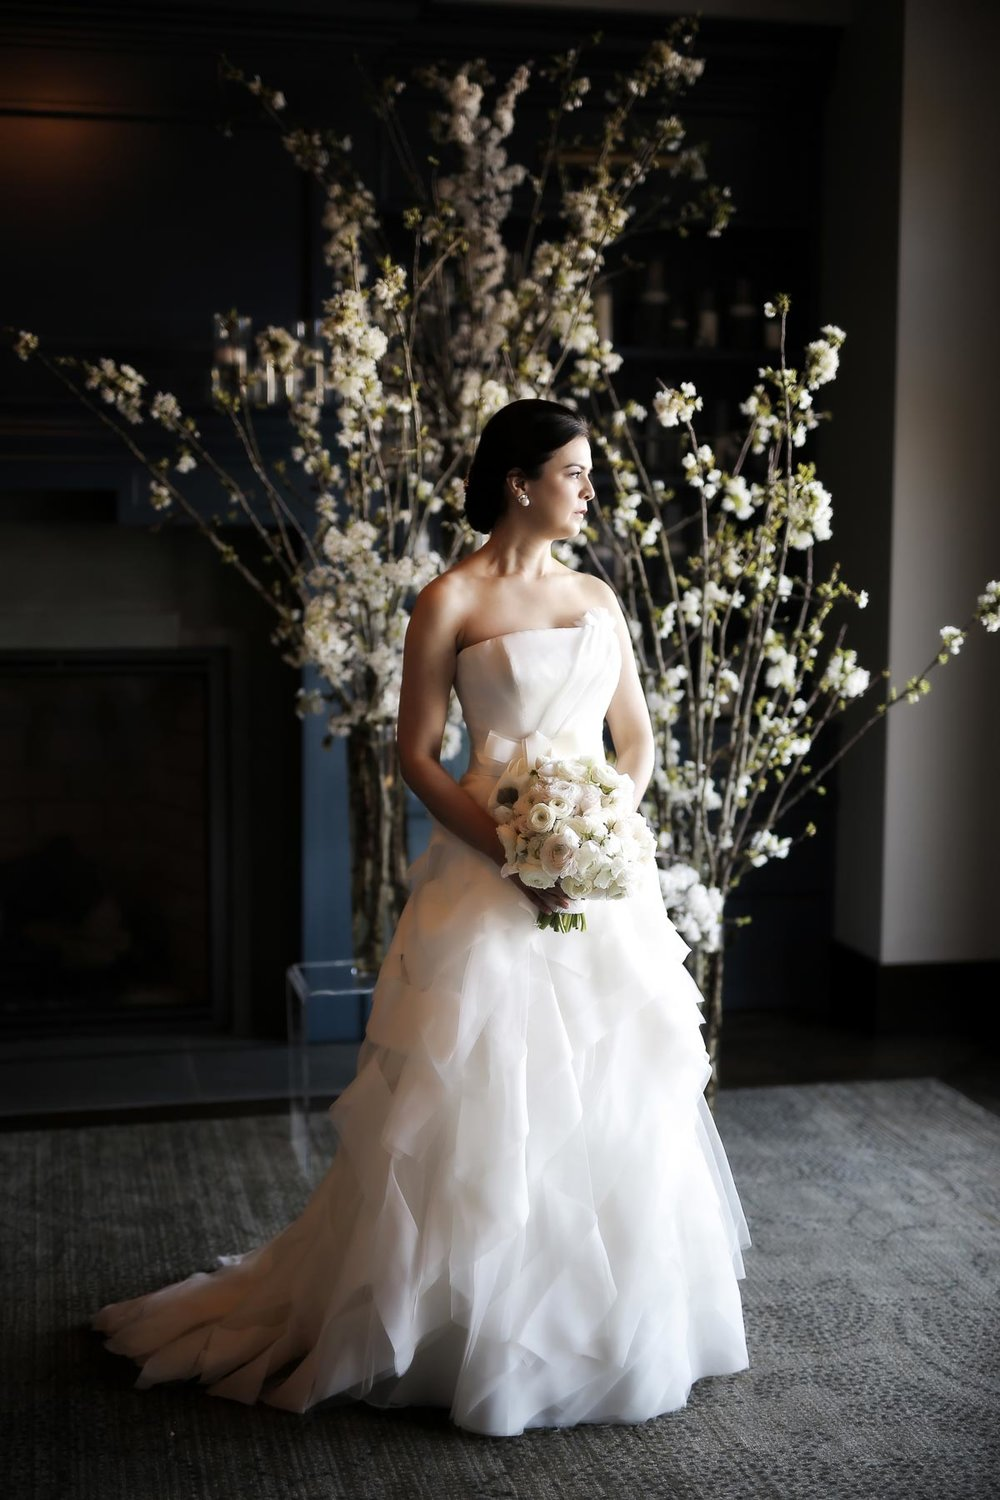 bridal-portrait-white-wedding-cherry-blossoms-park-city-weddings_pepper_nix_photography-36.jpg